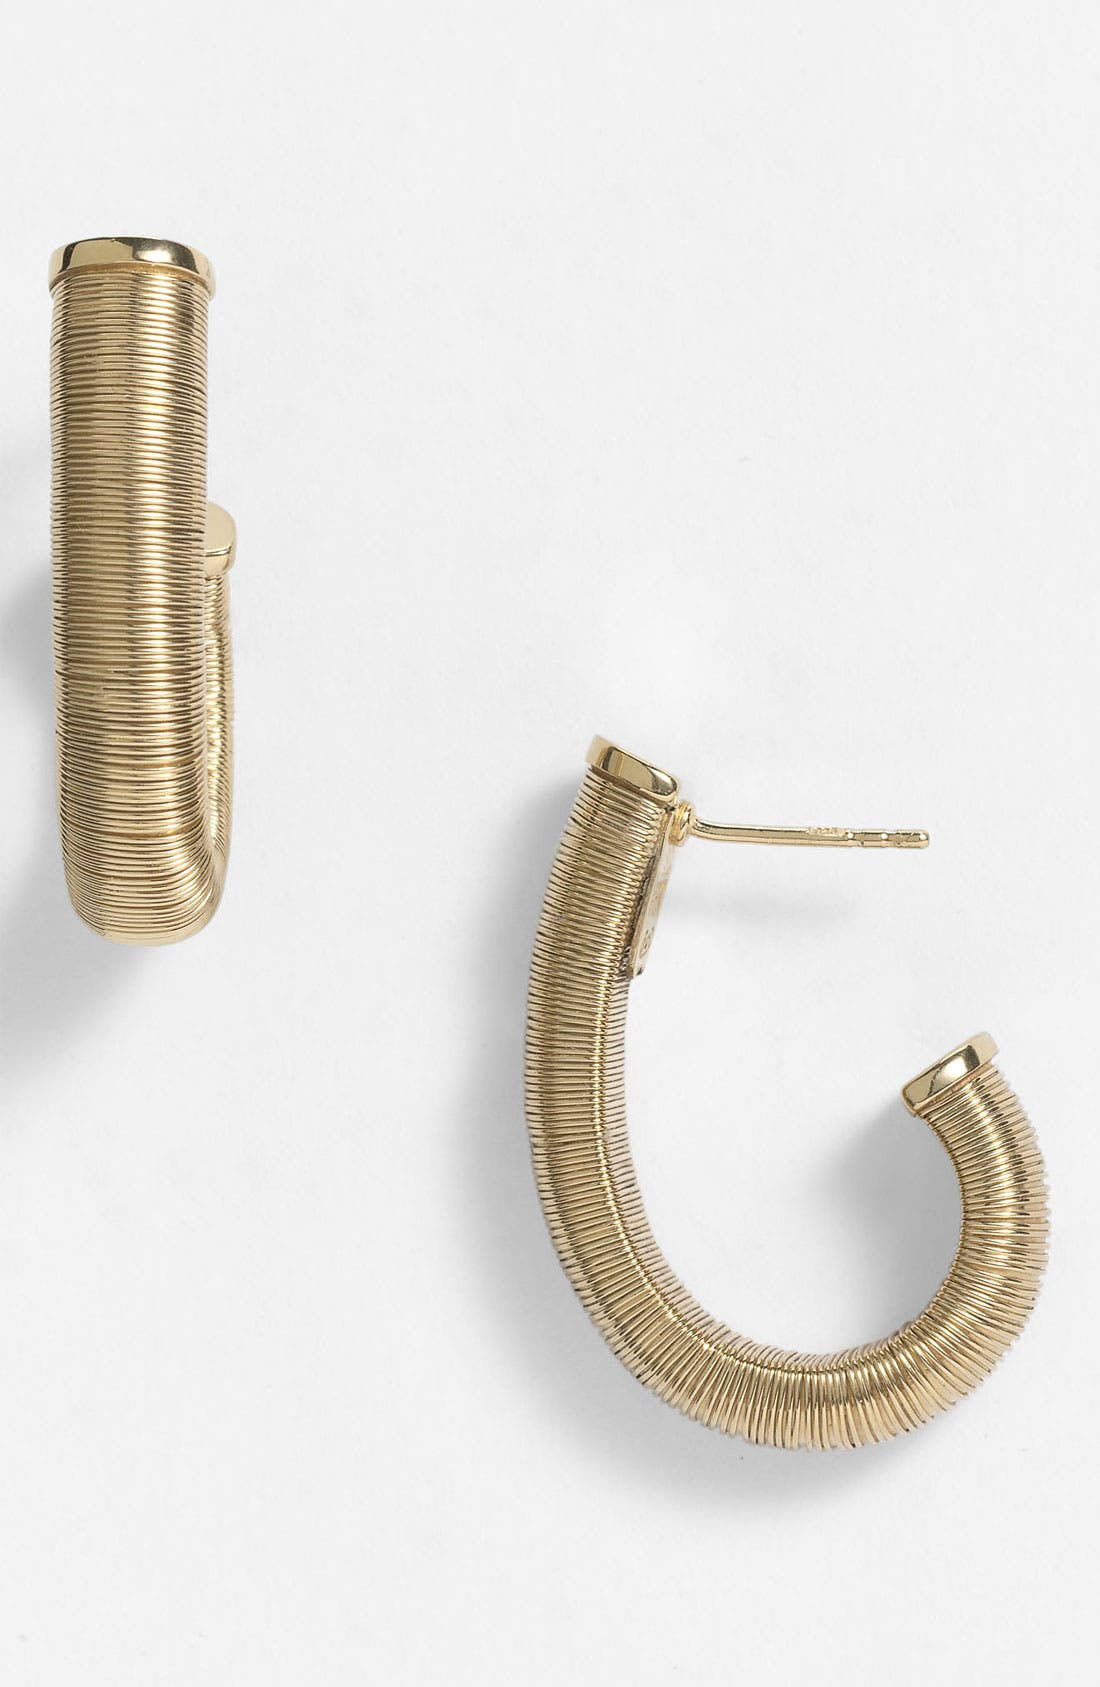 Alternate Image 1 Selected - Adami & Martucci 'Seta' Hoop Earrings (Nordstrom Exclusive)